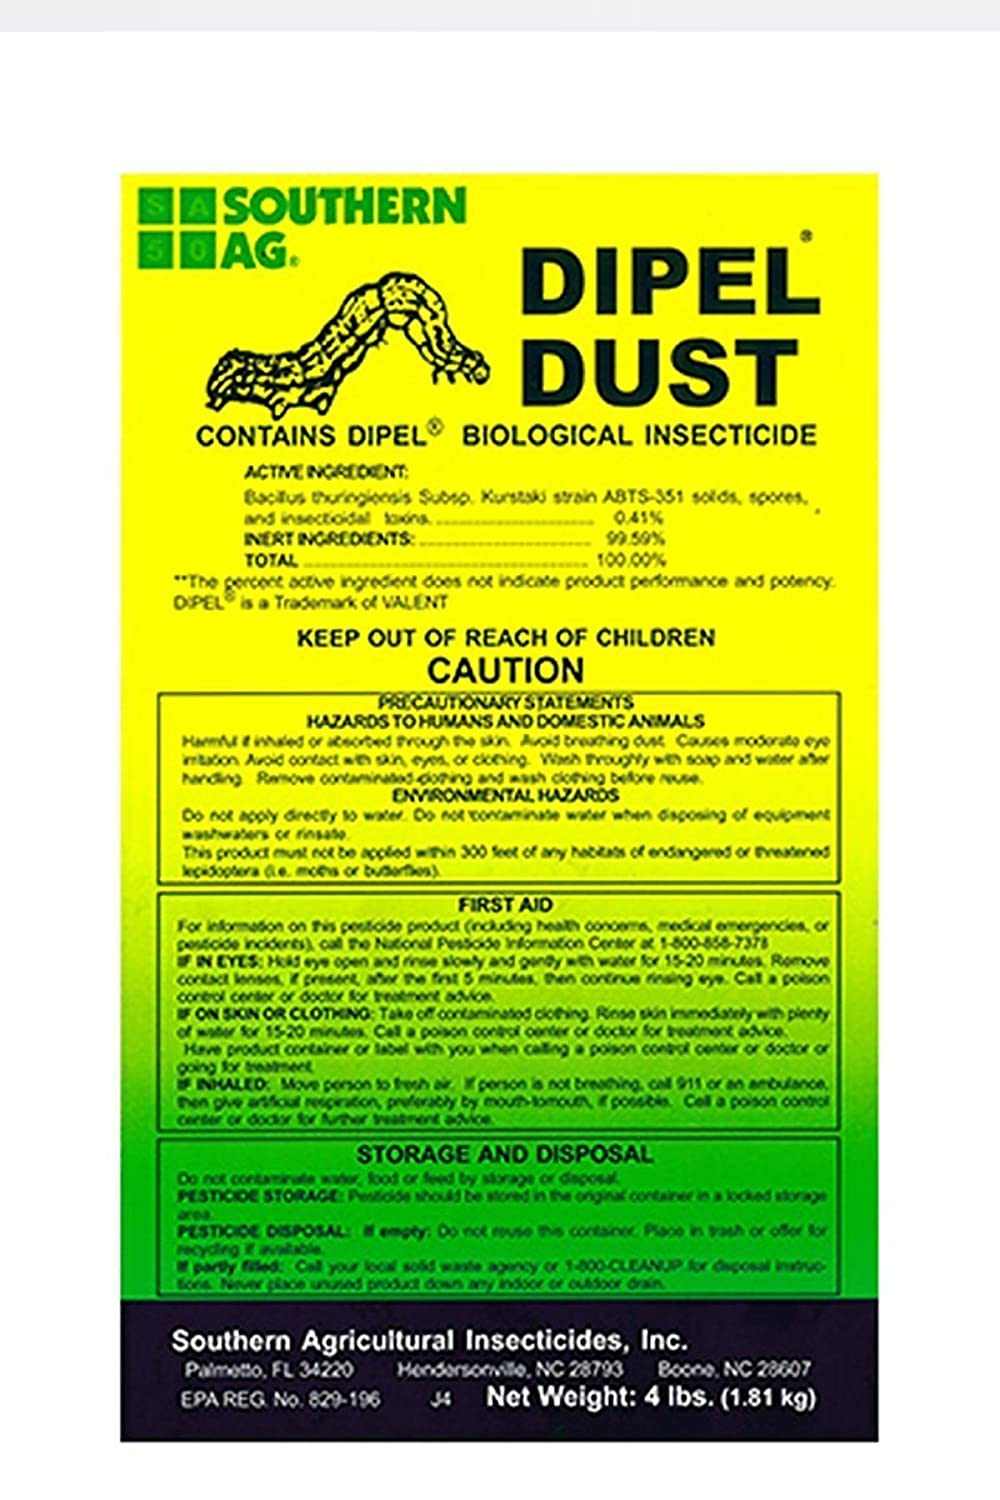 Southern Ag Dipel Dust Biological Insecticide Bag Review